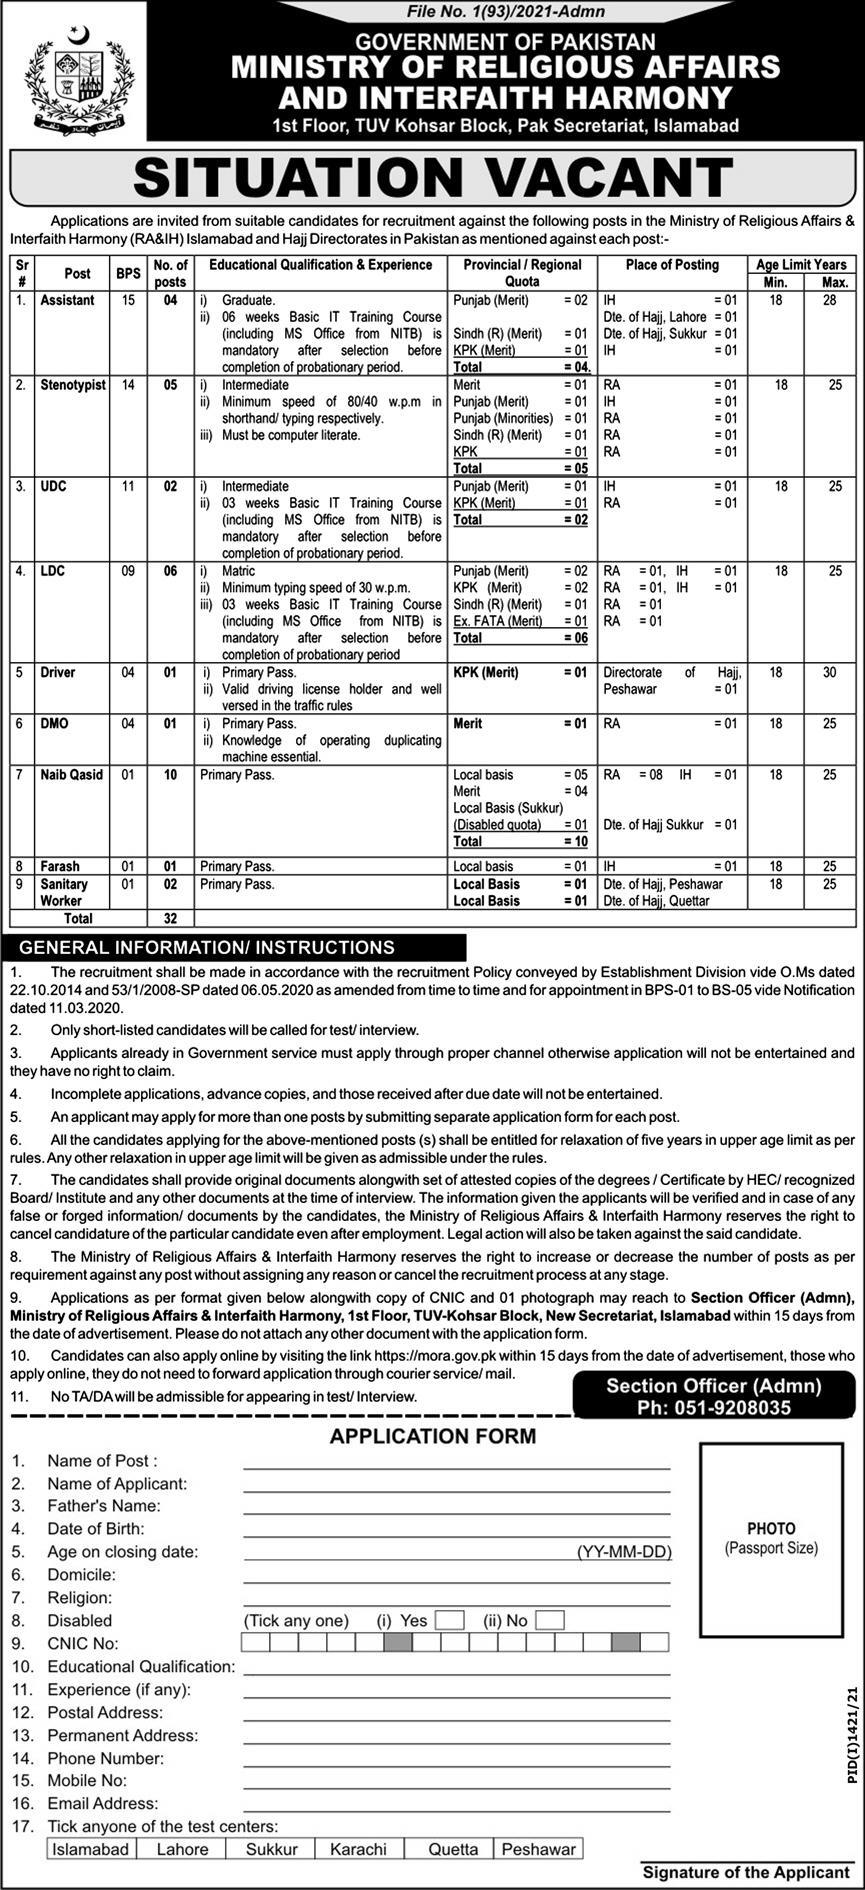 Class IV and Clerical Staff Vacancies in Ministry of Religious Affairs and Interfaith Harmony